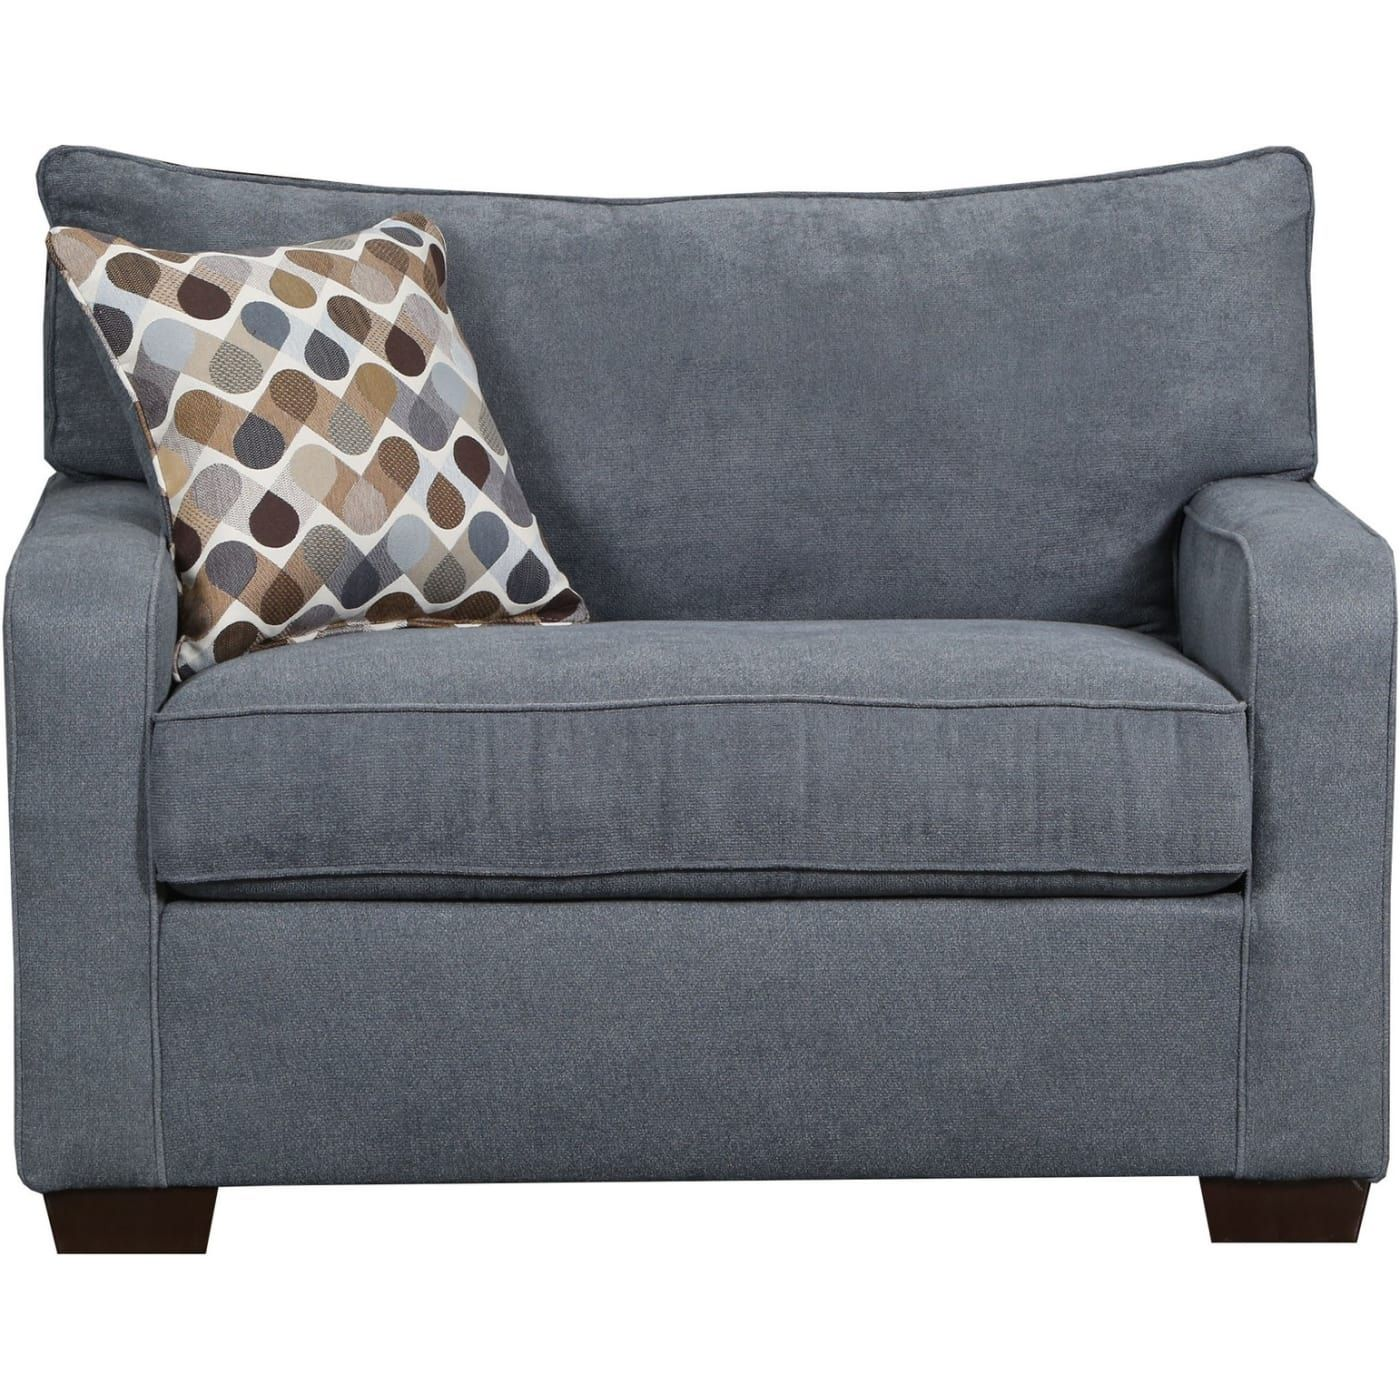 Simmons Upholstery 902501M Mia Denim Chair and a half